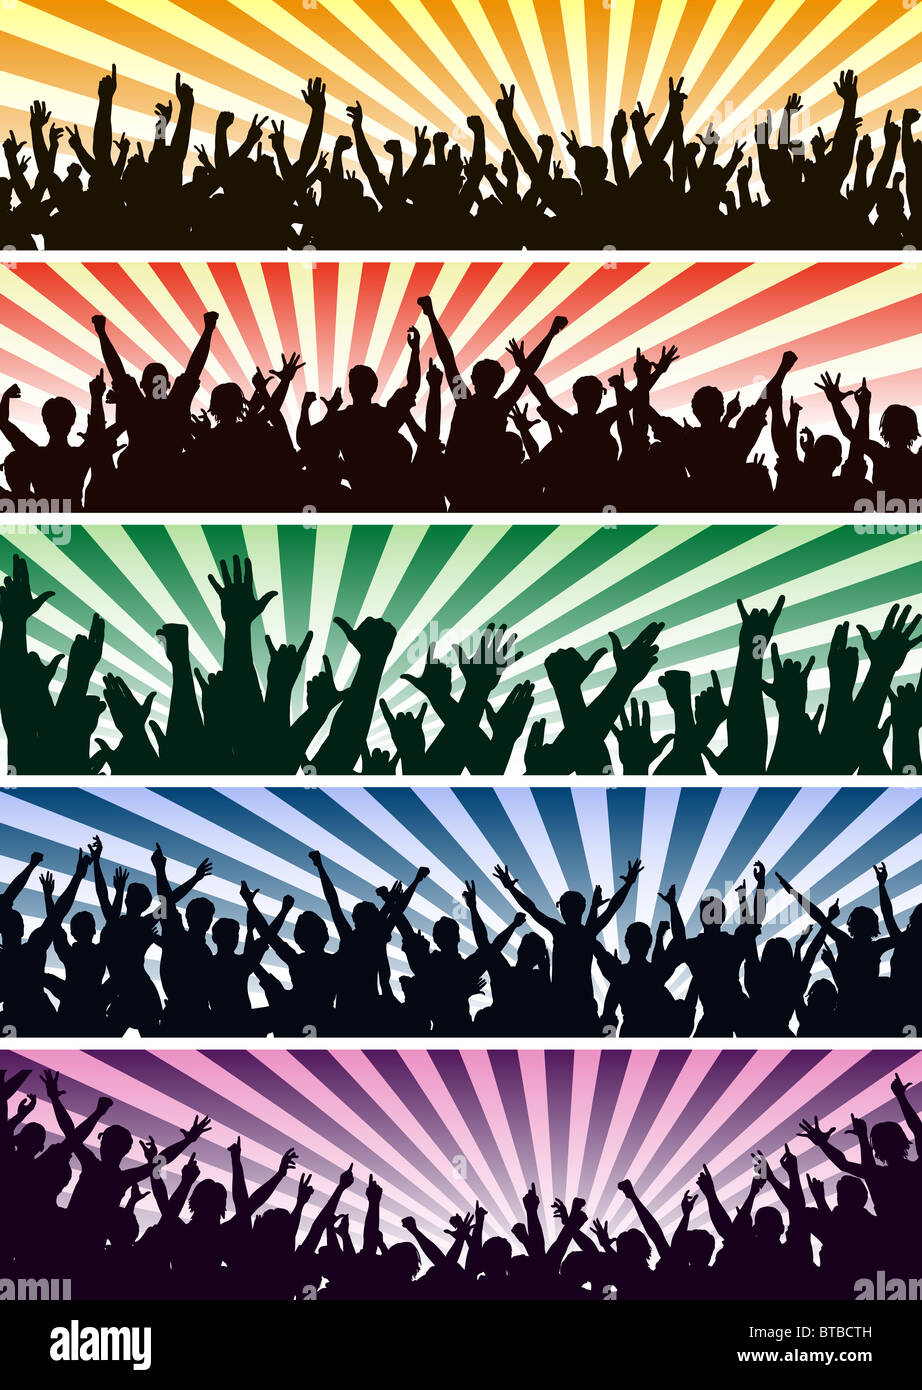 Set of illustrated concert crowd silhouettes - Stock Image